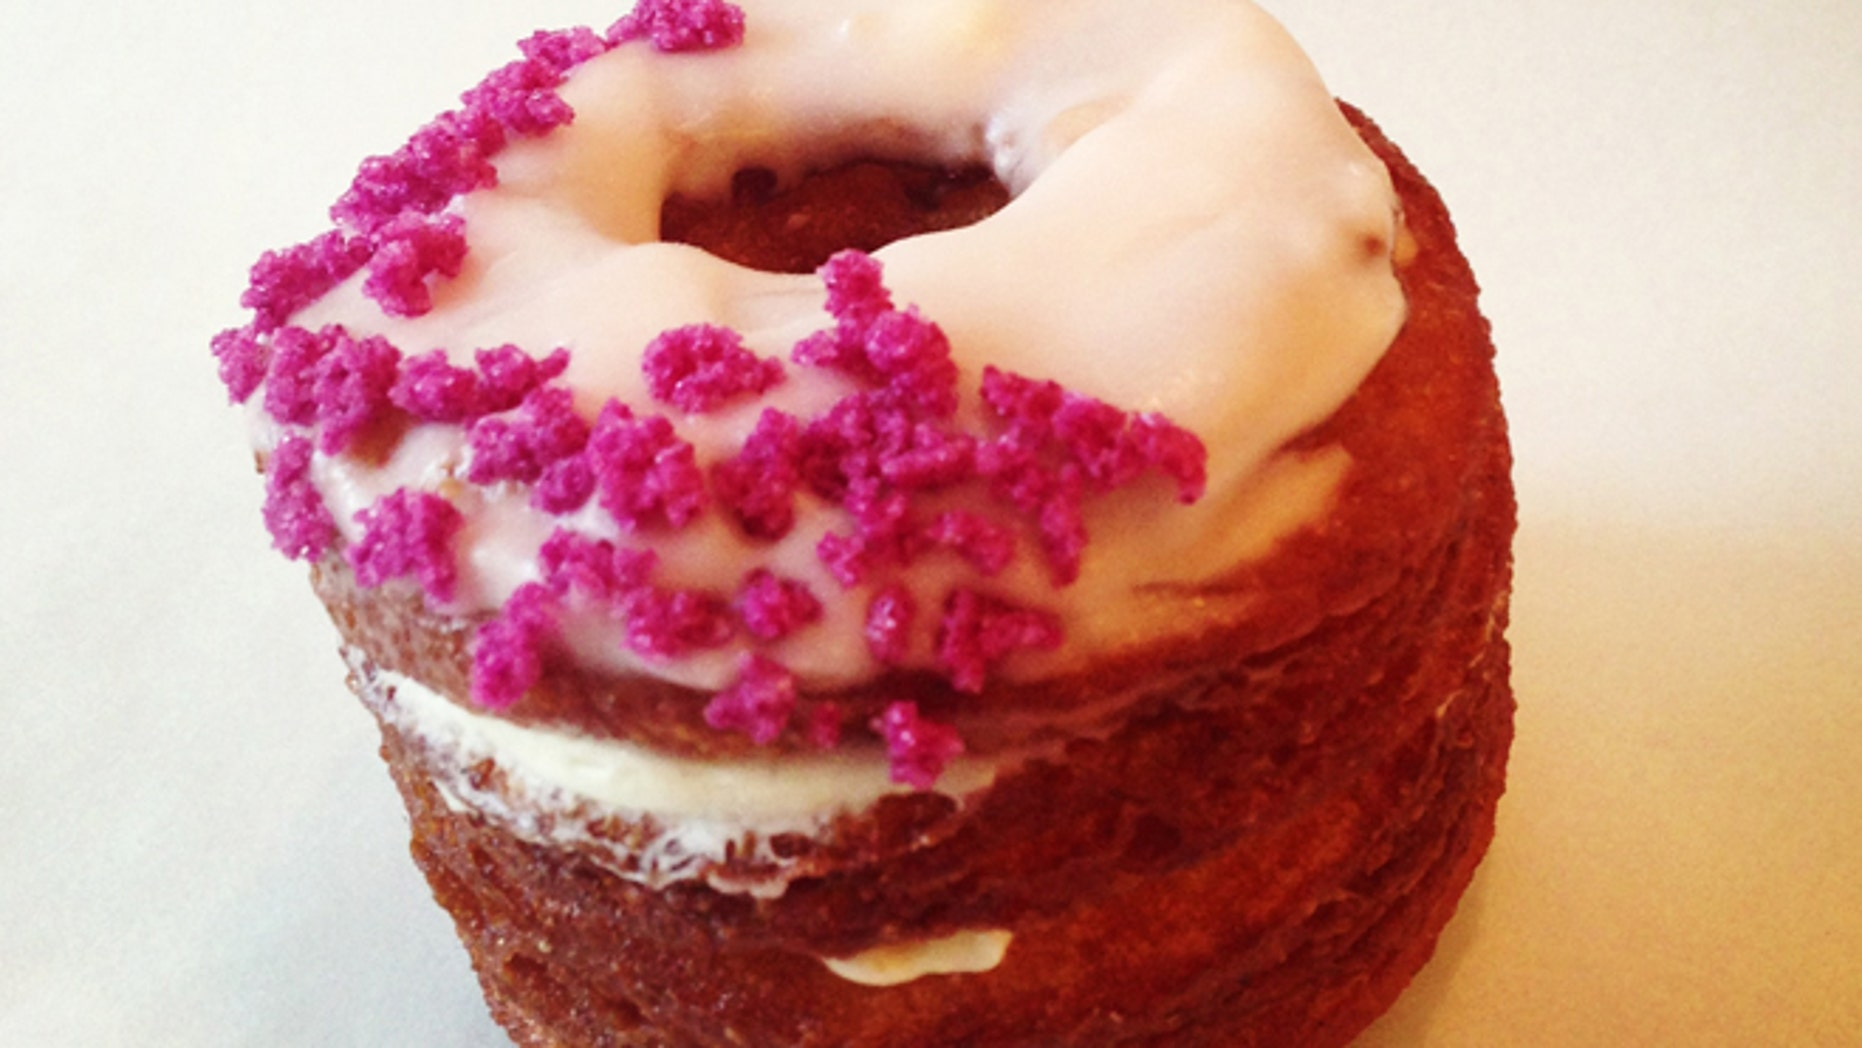 Dominique Ansel's new cronut is a cross between a croissant and doughnut.